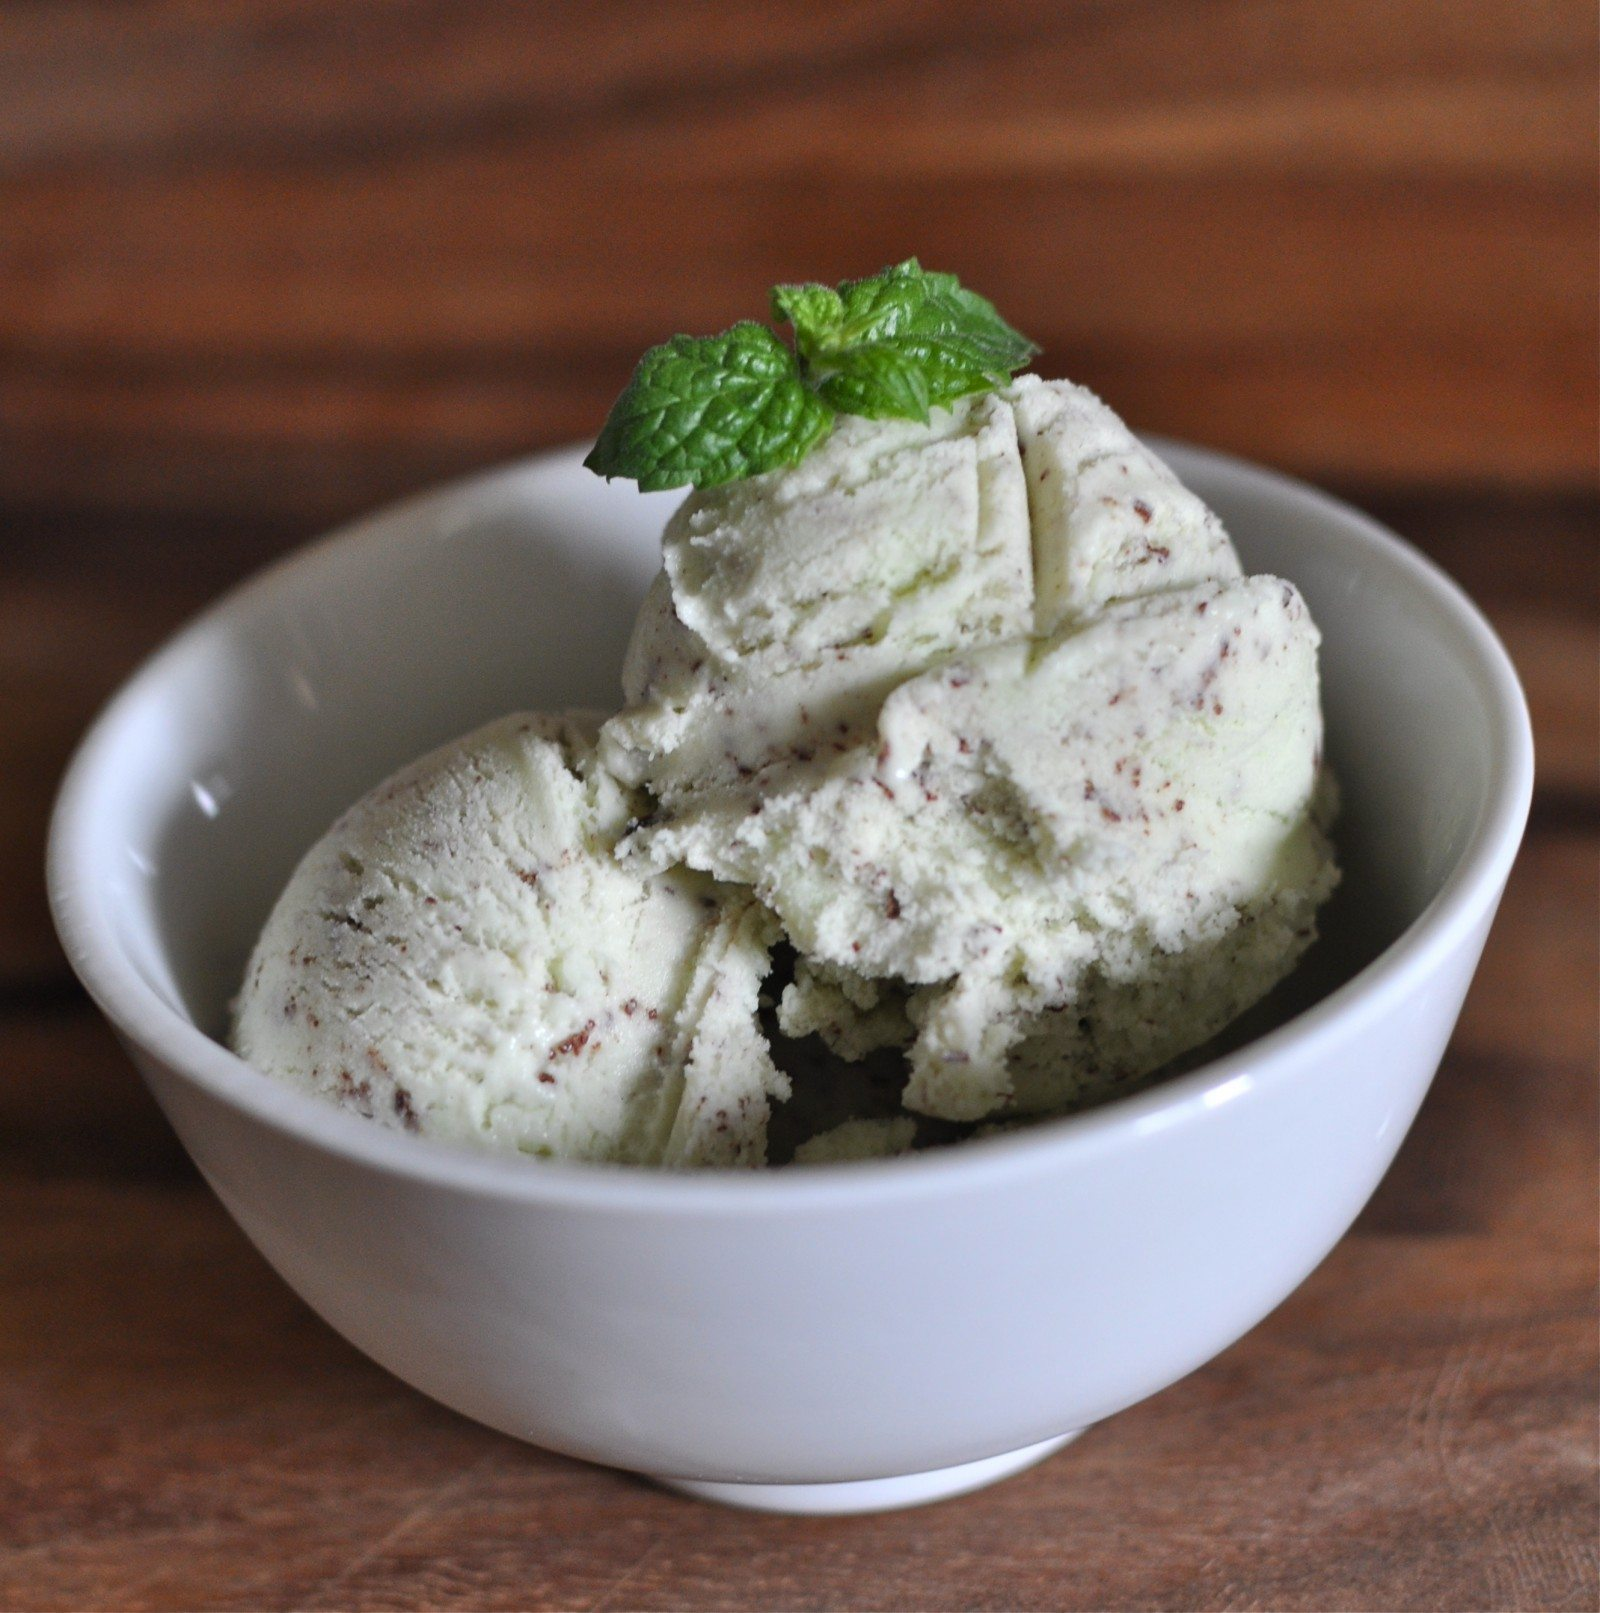 Mint chocolate chip gelato